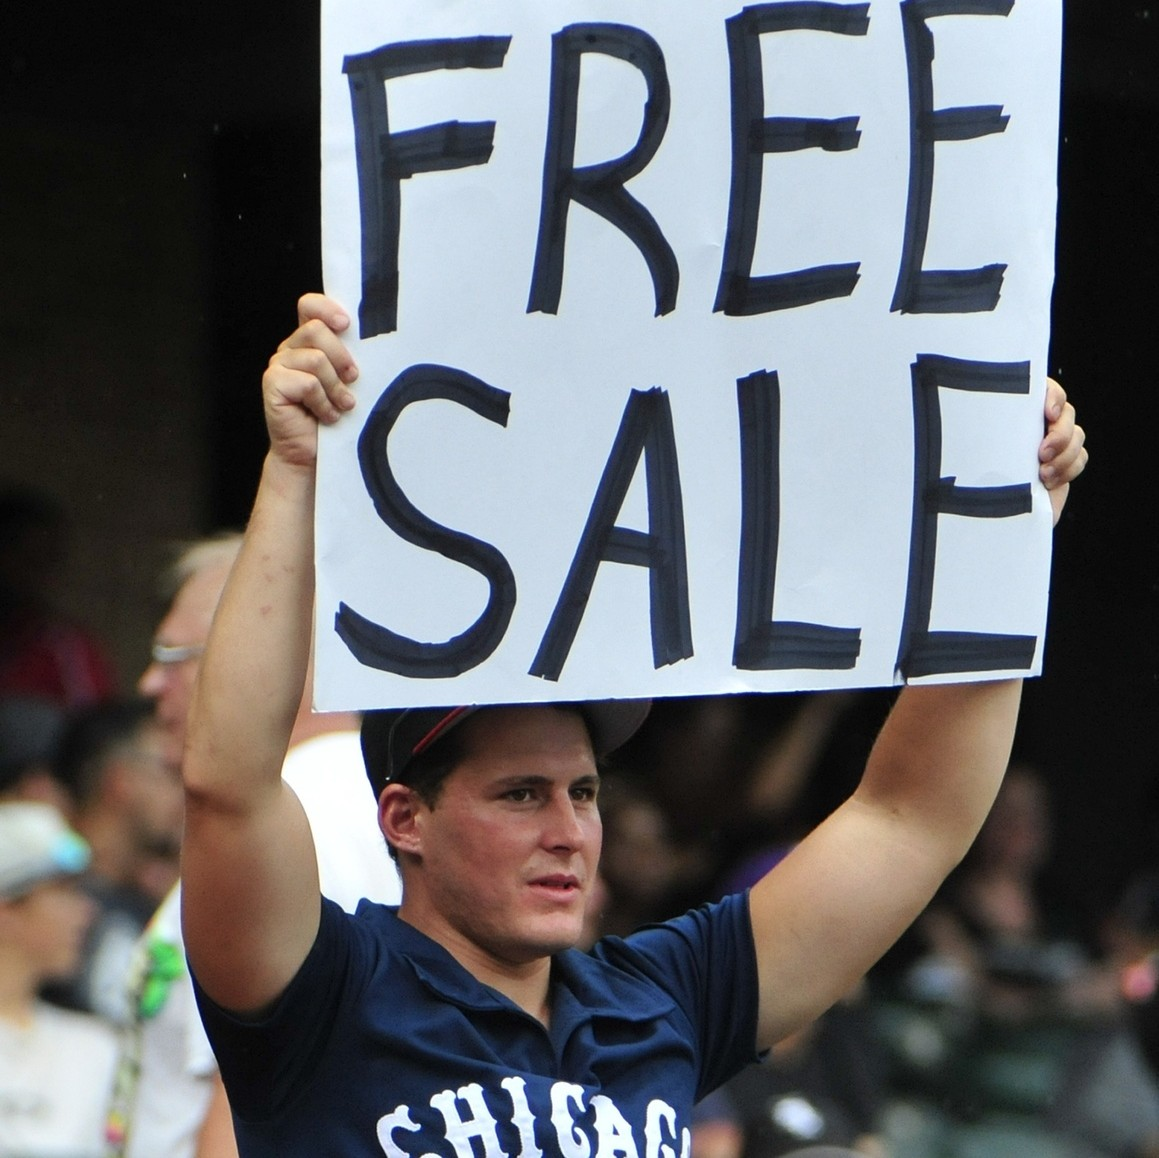 Chris-sale-is-sorrynot-sorry-for-cutting-up-chicagos-throwback-jerseys-1469545900.jpg?crop=1xw:0.7231638418079096xh;0xw,0